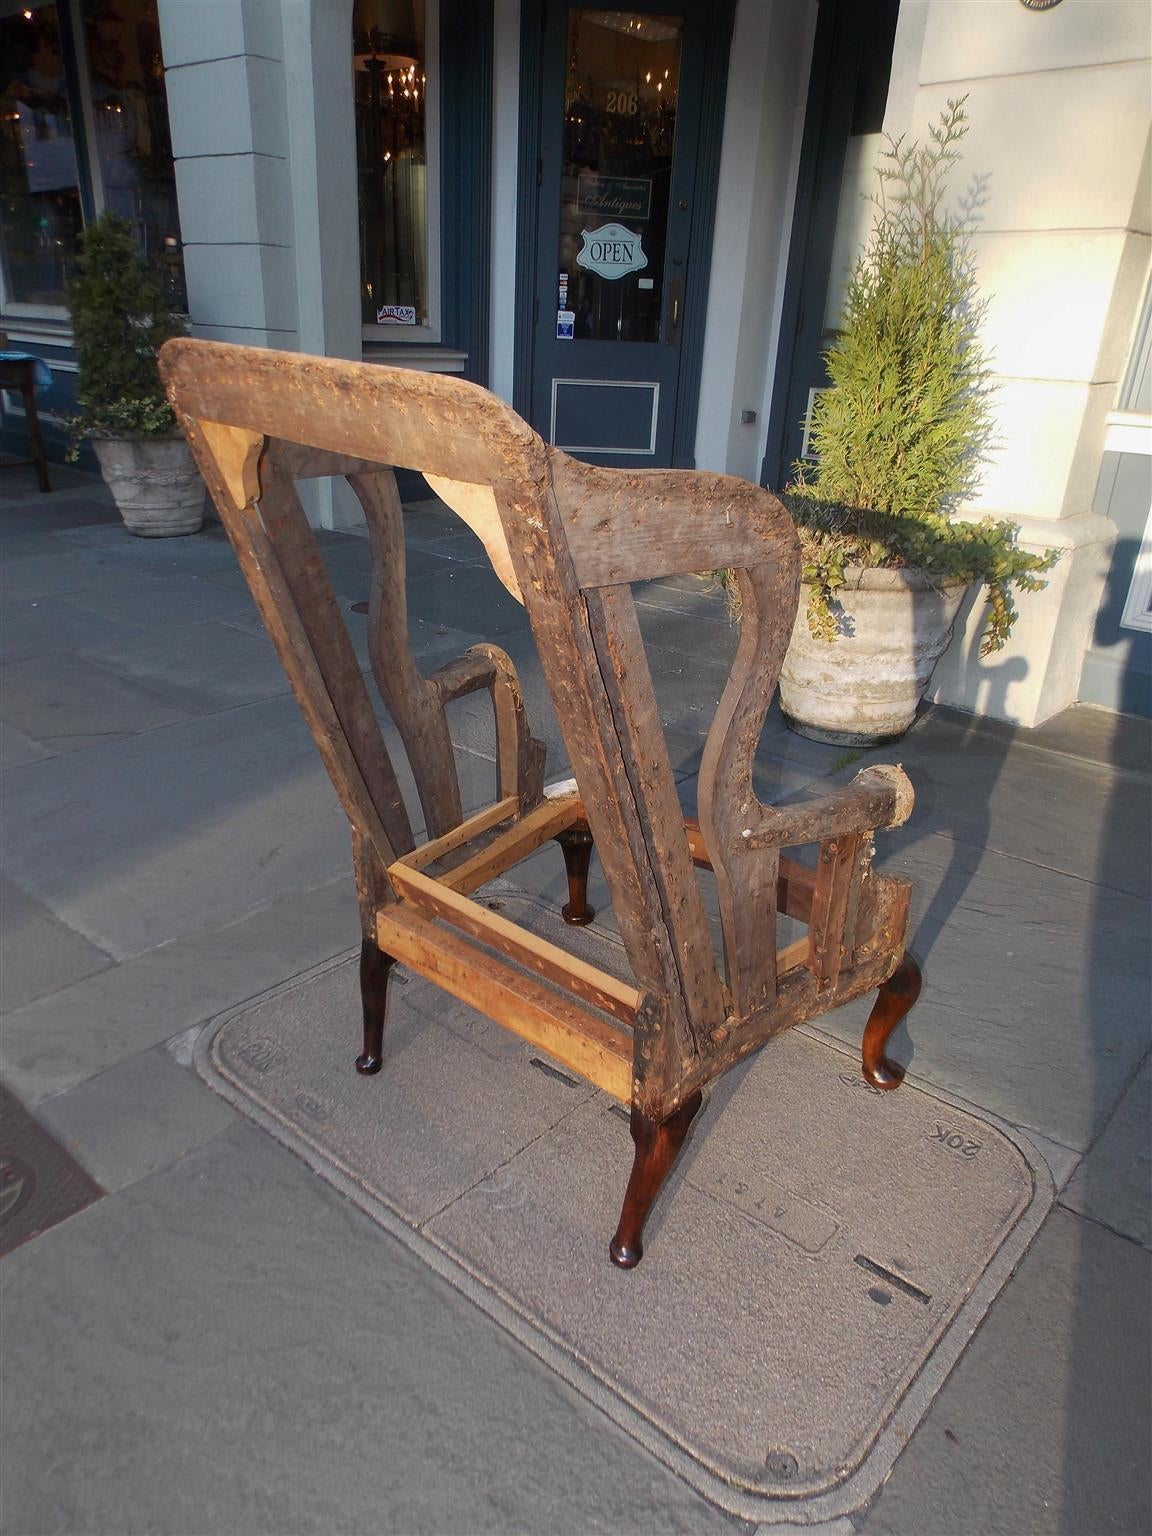 Mid-18th Century English Queen Anne Mahogany Wing Back Chair, Circa 1740  For Sale - English Queen Anne Mahogany Wing Back Chair, Circa 1740 At 1stdibs